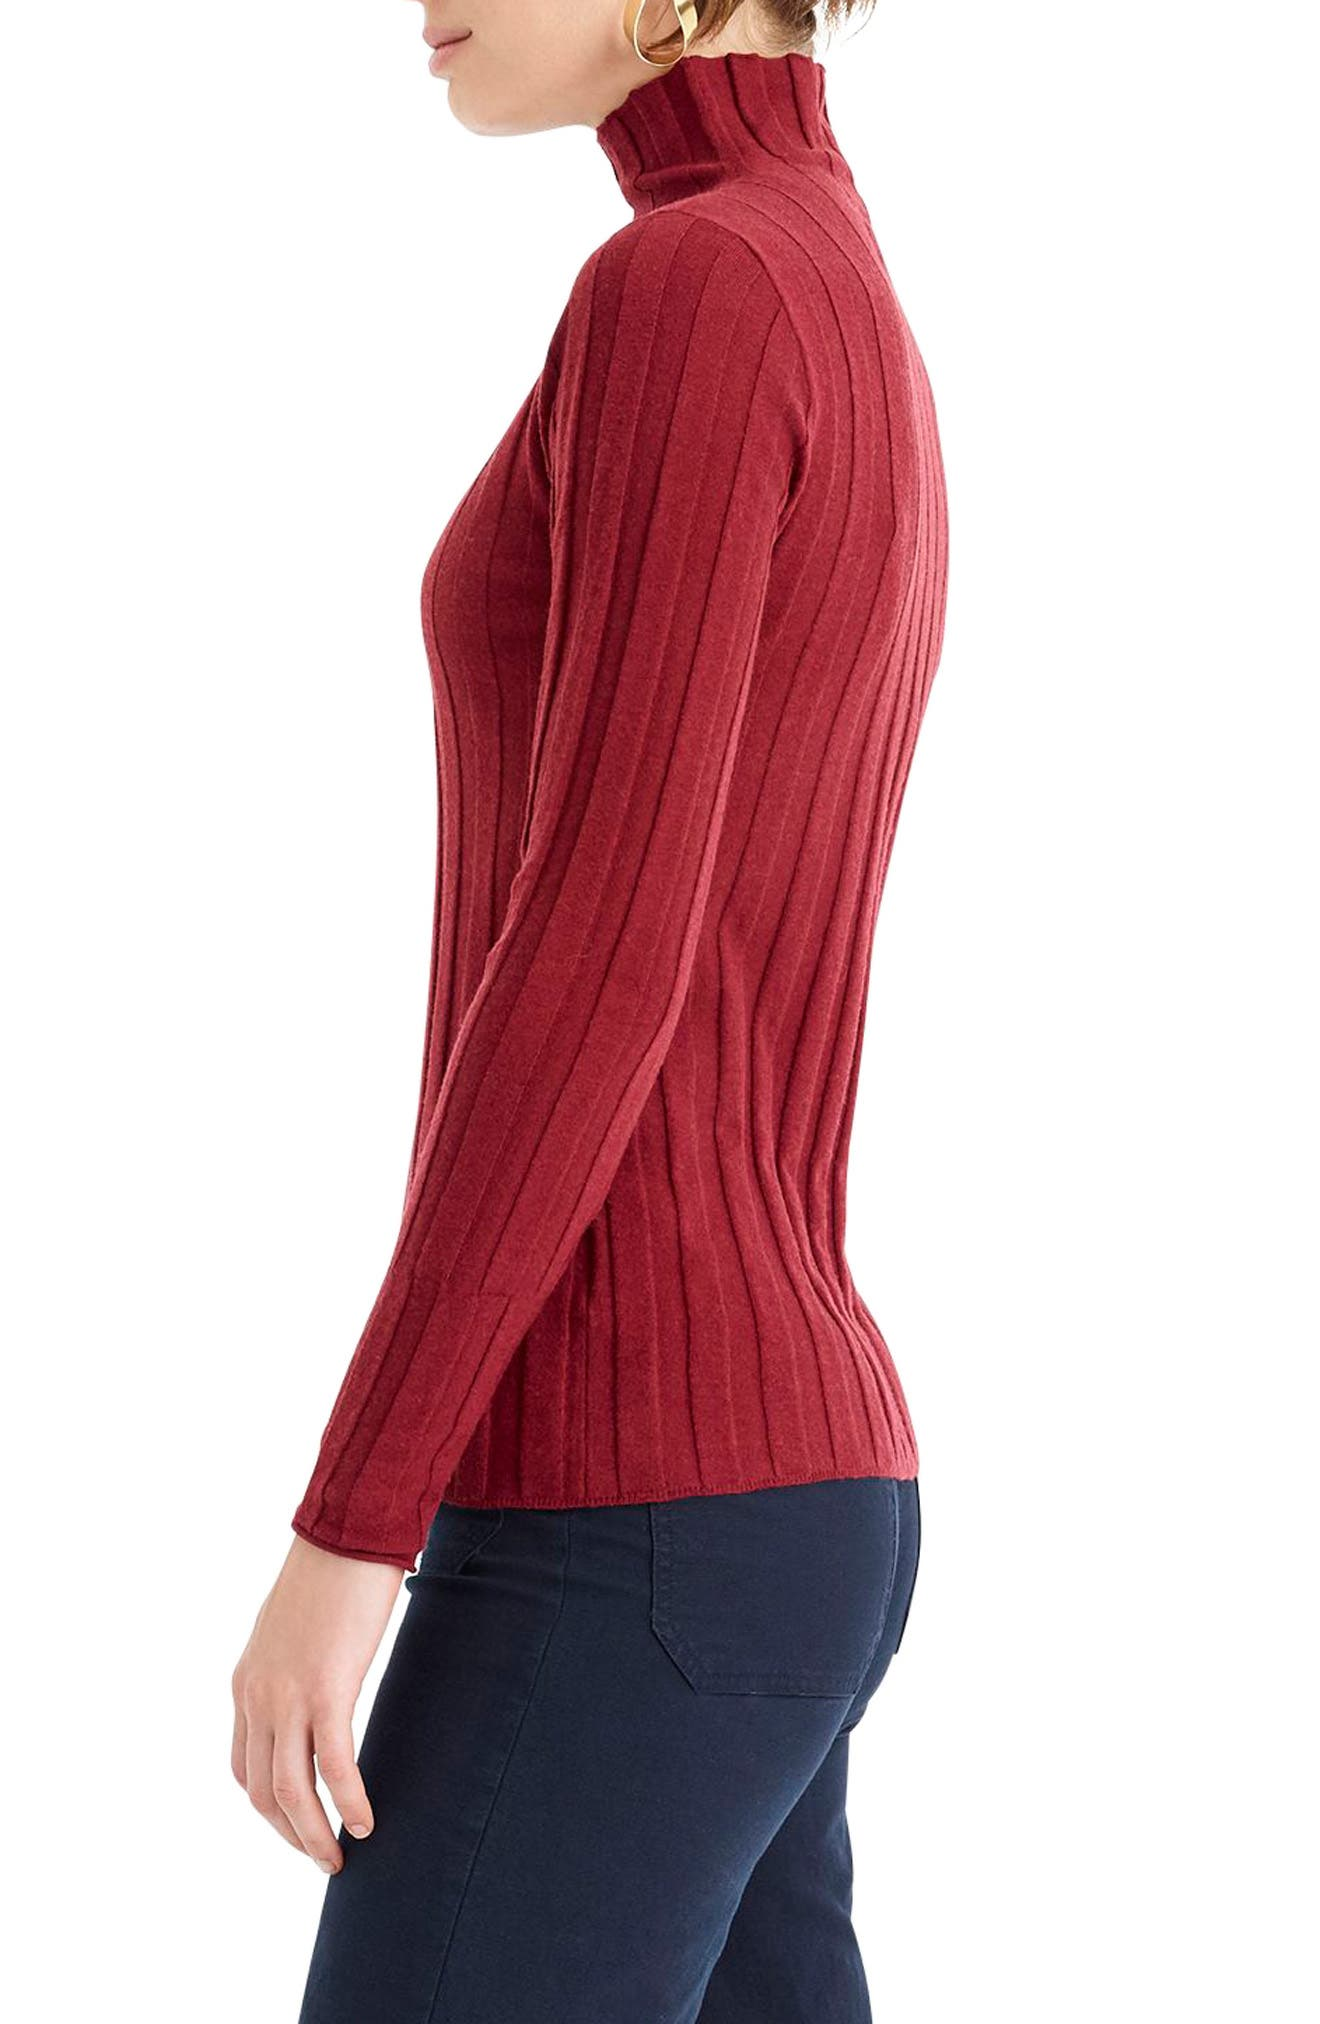 365 Stretch Ribbed Turtleneck Sweater,                             Alternate thumbnail 3, color,                             930